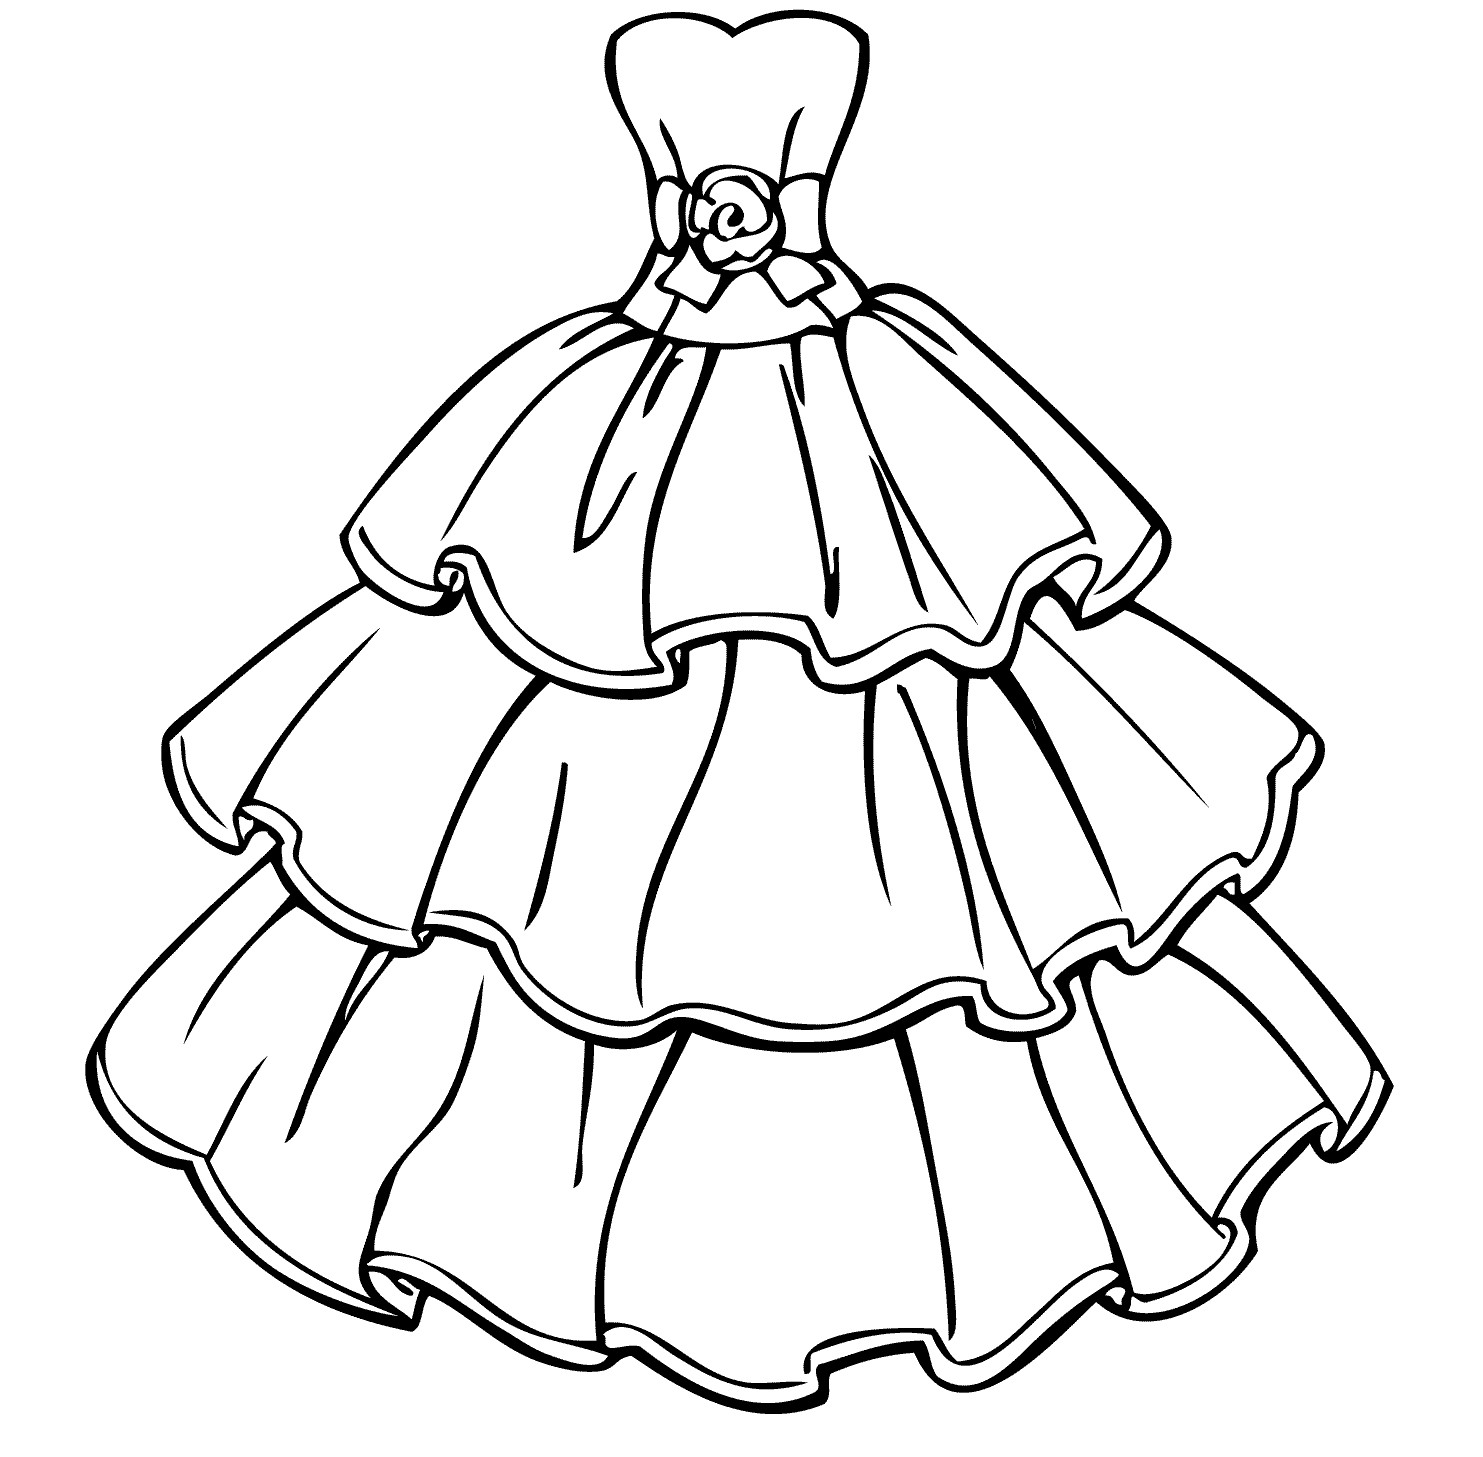 coloring pages of dresses coloring pages of princess dresses at getcoloringscom pages coloring dresses of